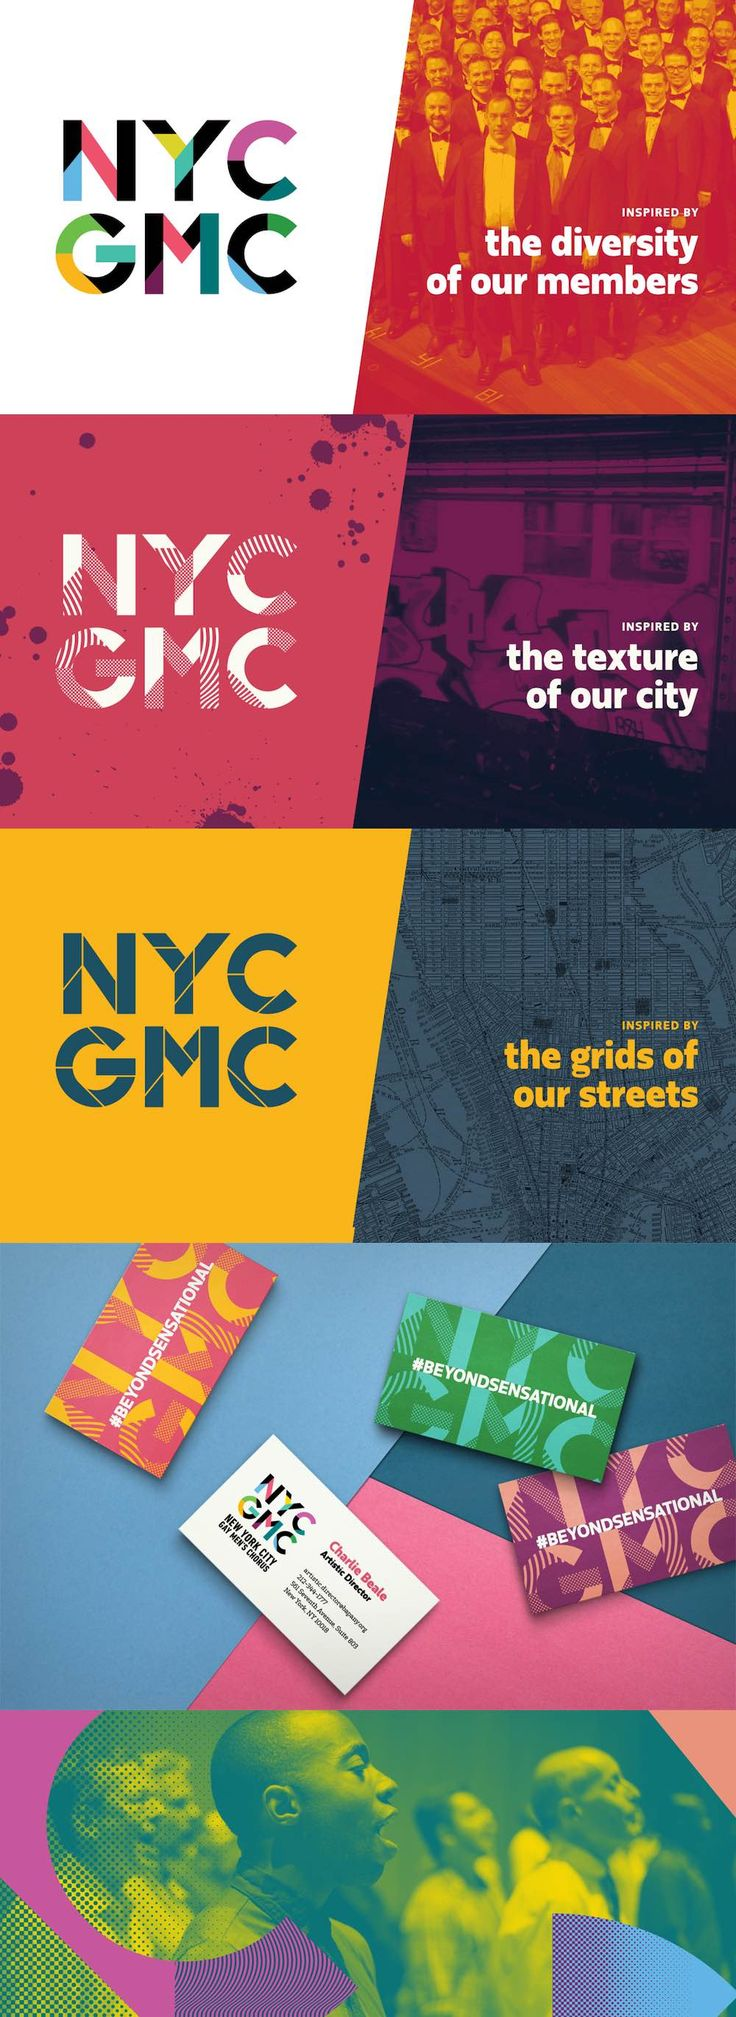 NYC GMC                                                                                                                                                      More